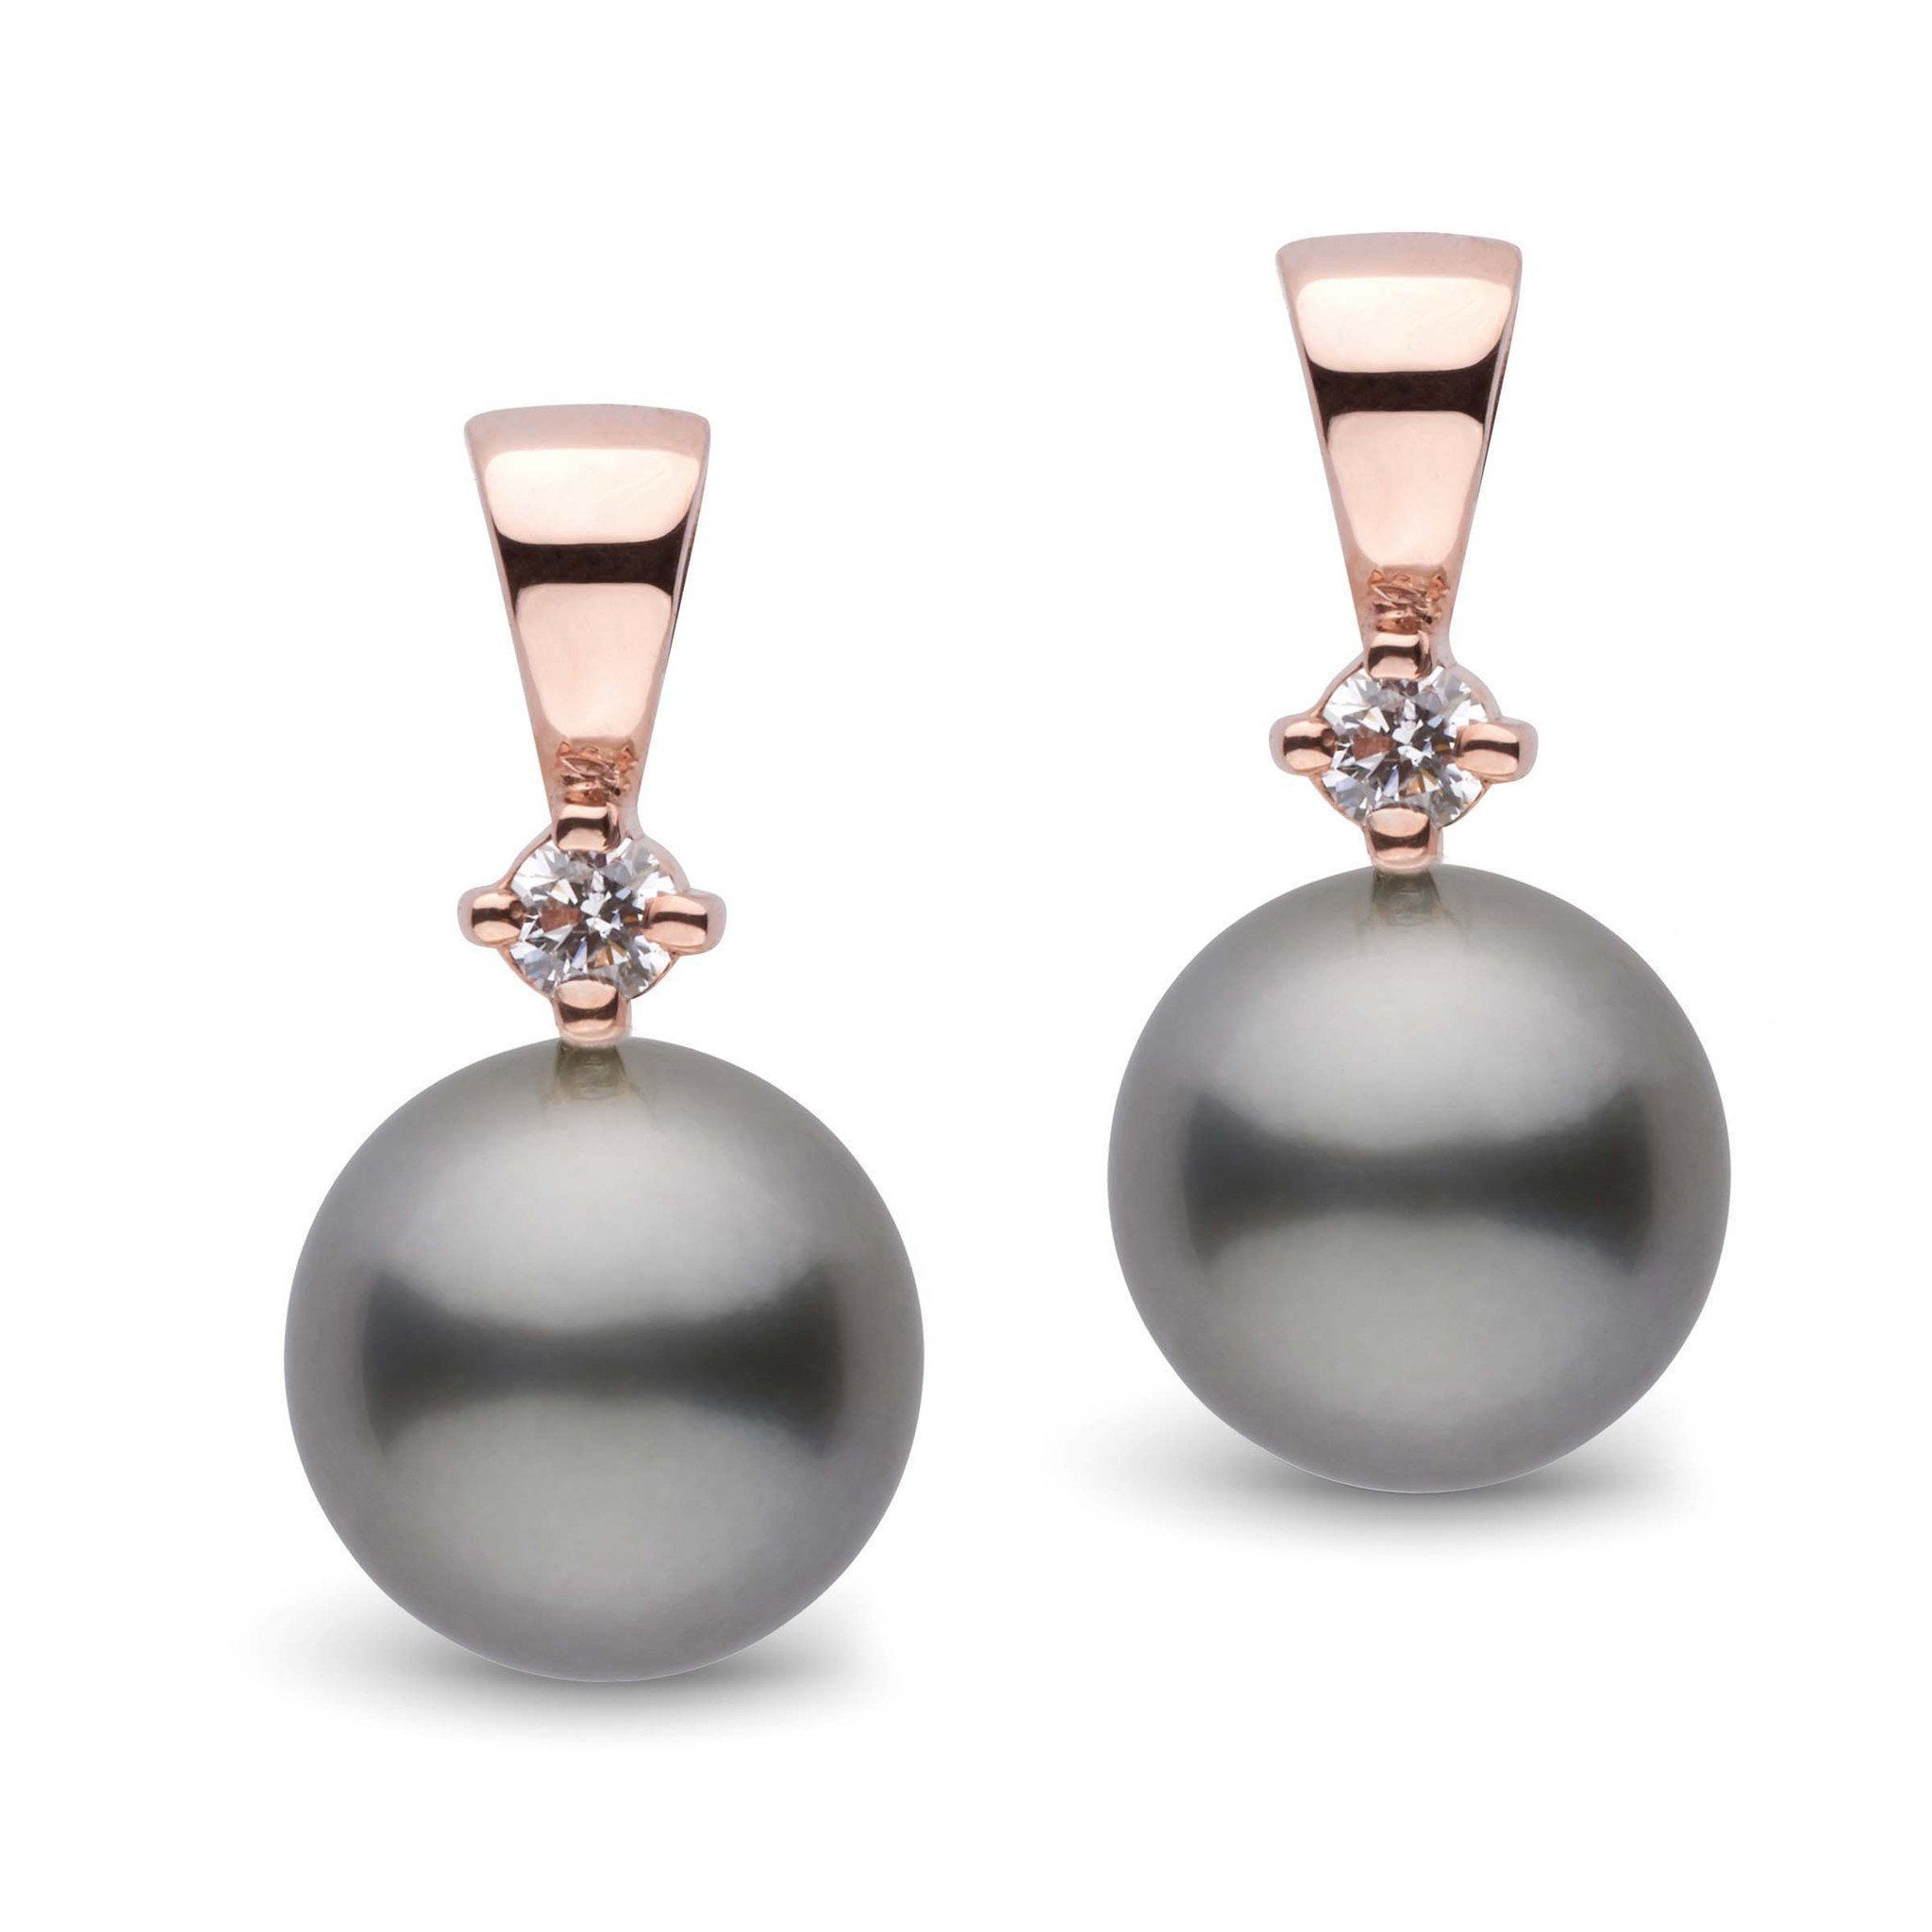 Nobility Collection Tahitian 9.0-10.0 mm Pearl and Diamond Earrings